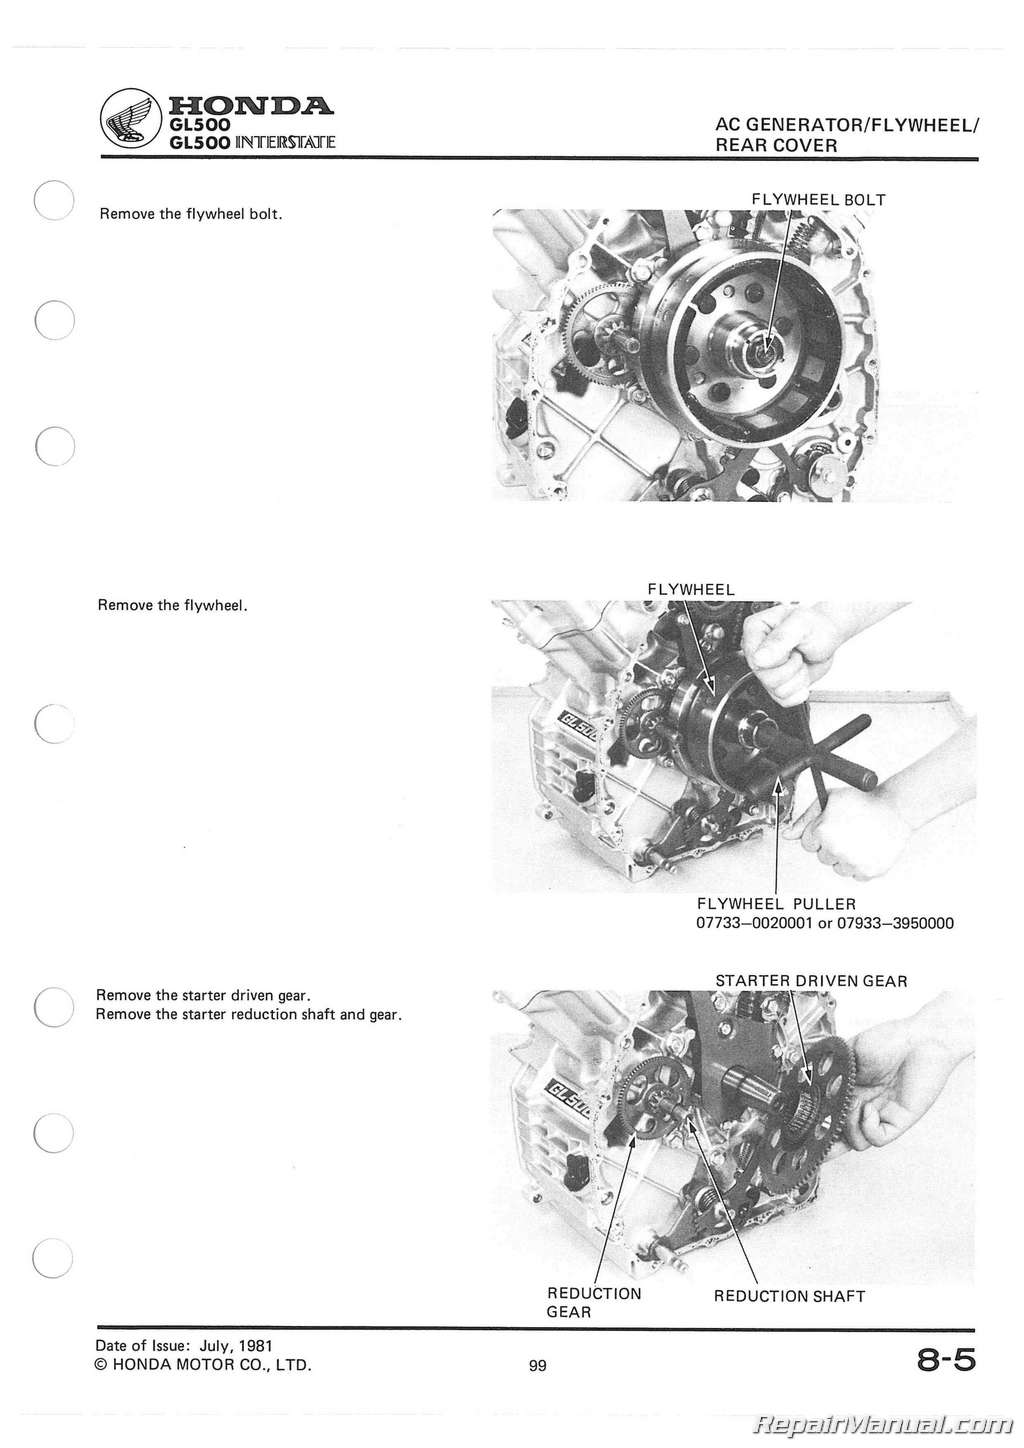 Honda Silverwing Gl Gl Service Manual Page on Honda Silverwing Gl500 Motorcycle For Sale